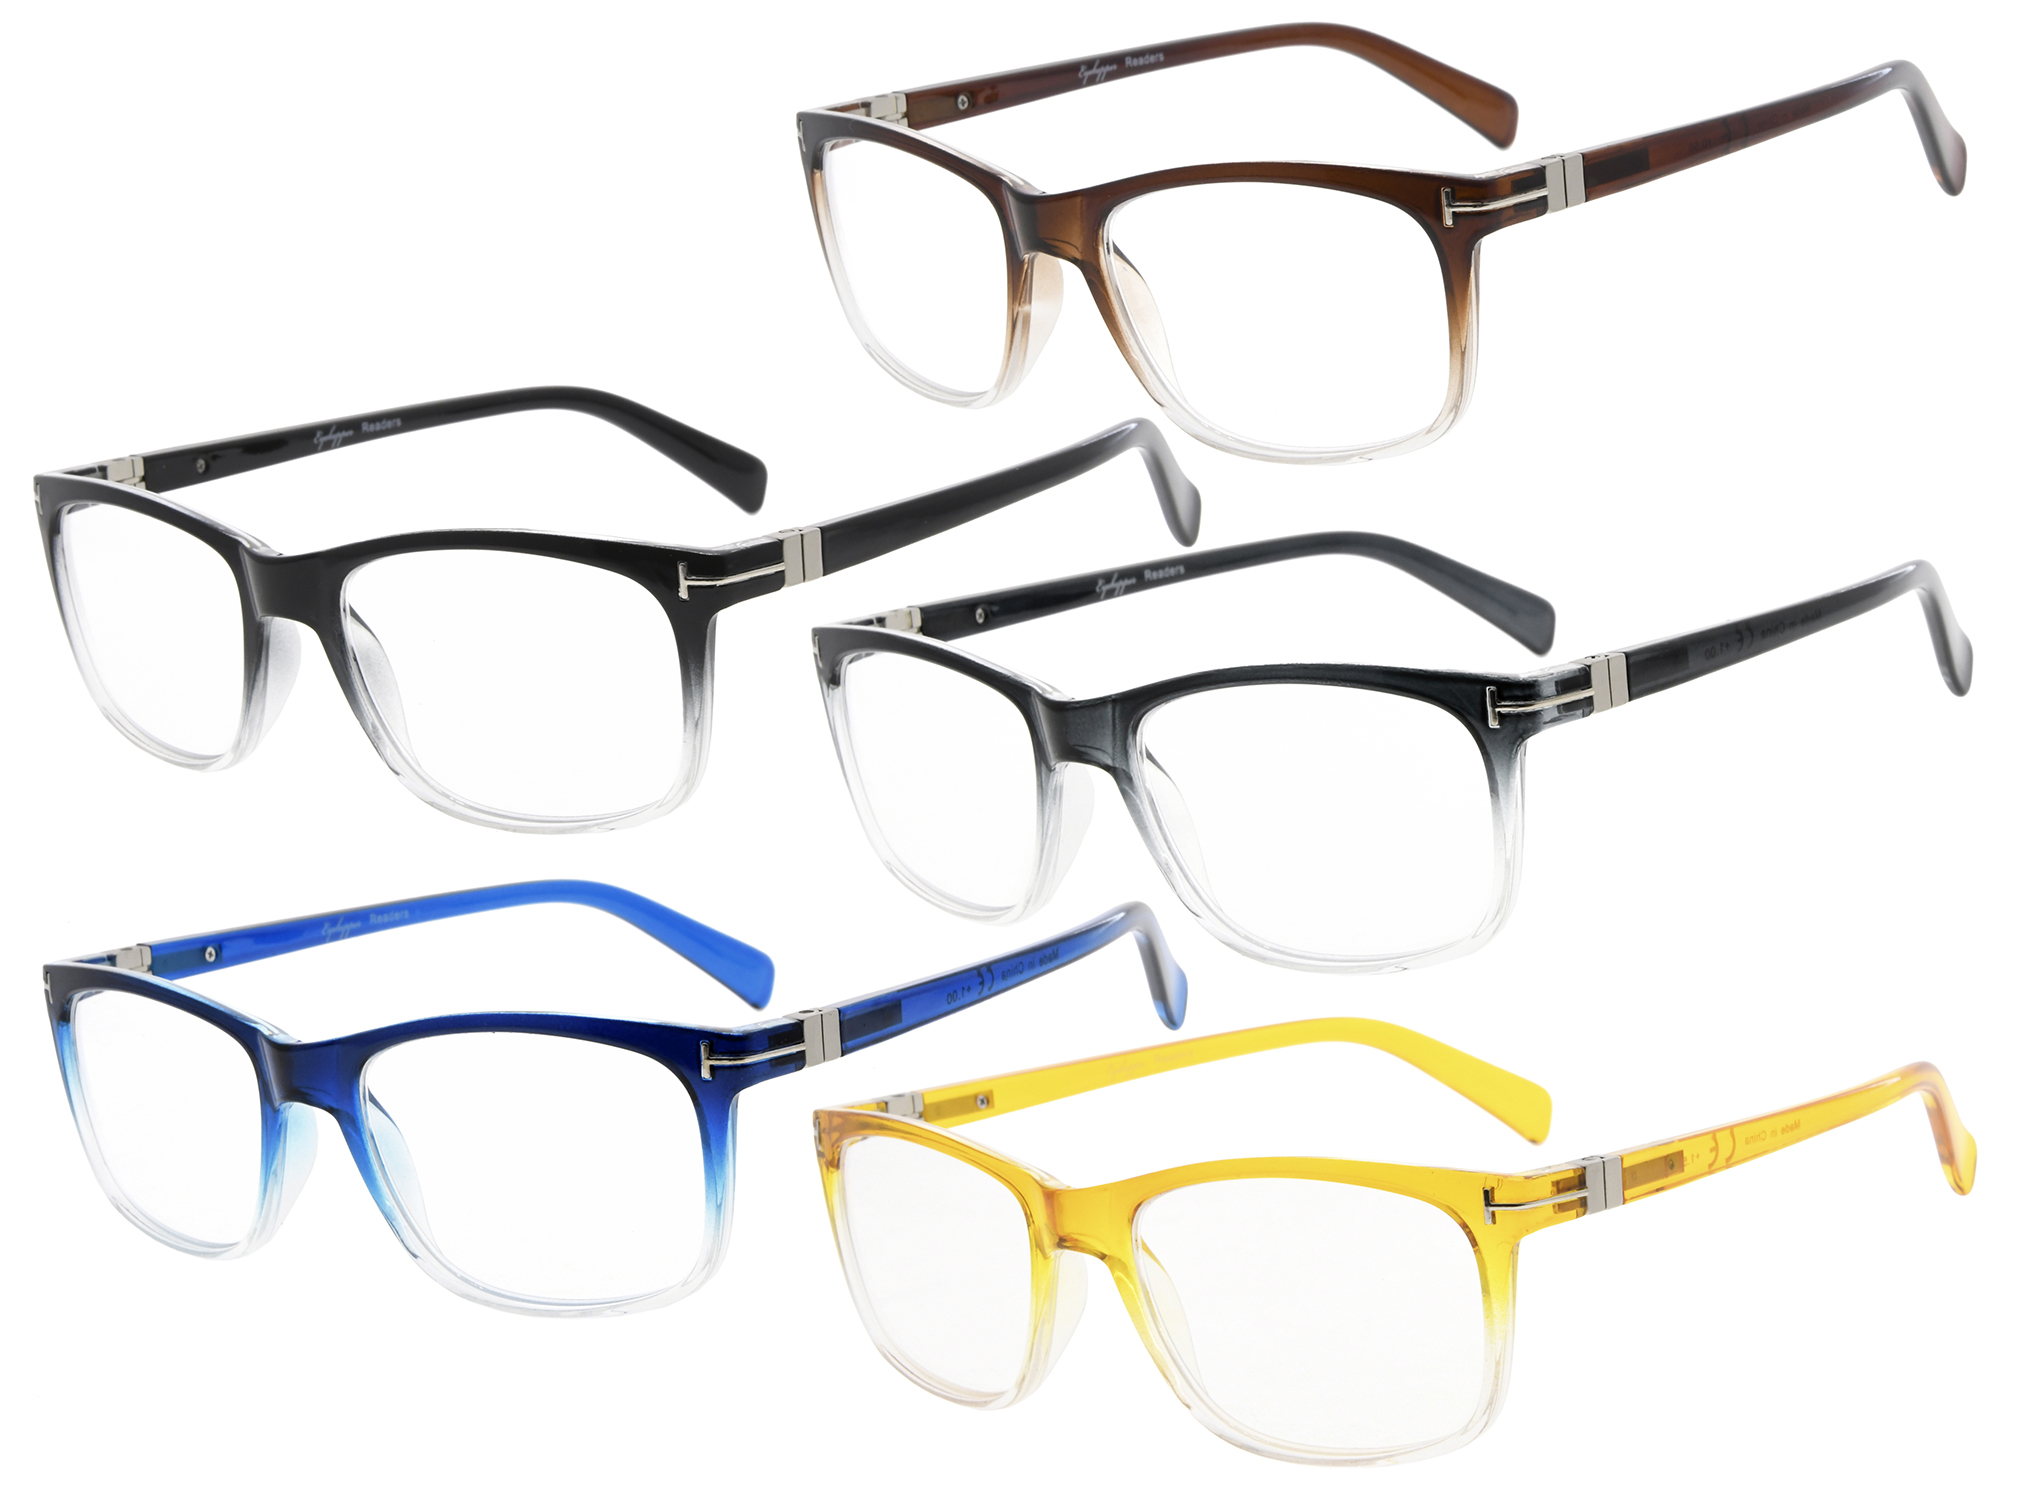 b2f8d6d2e9 Reading Glasses 5-pack Fashion Retro Square Lens Readers Men Women R150 Item  NO  R150-5pcs-Mix